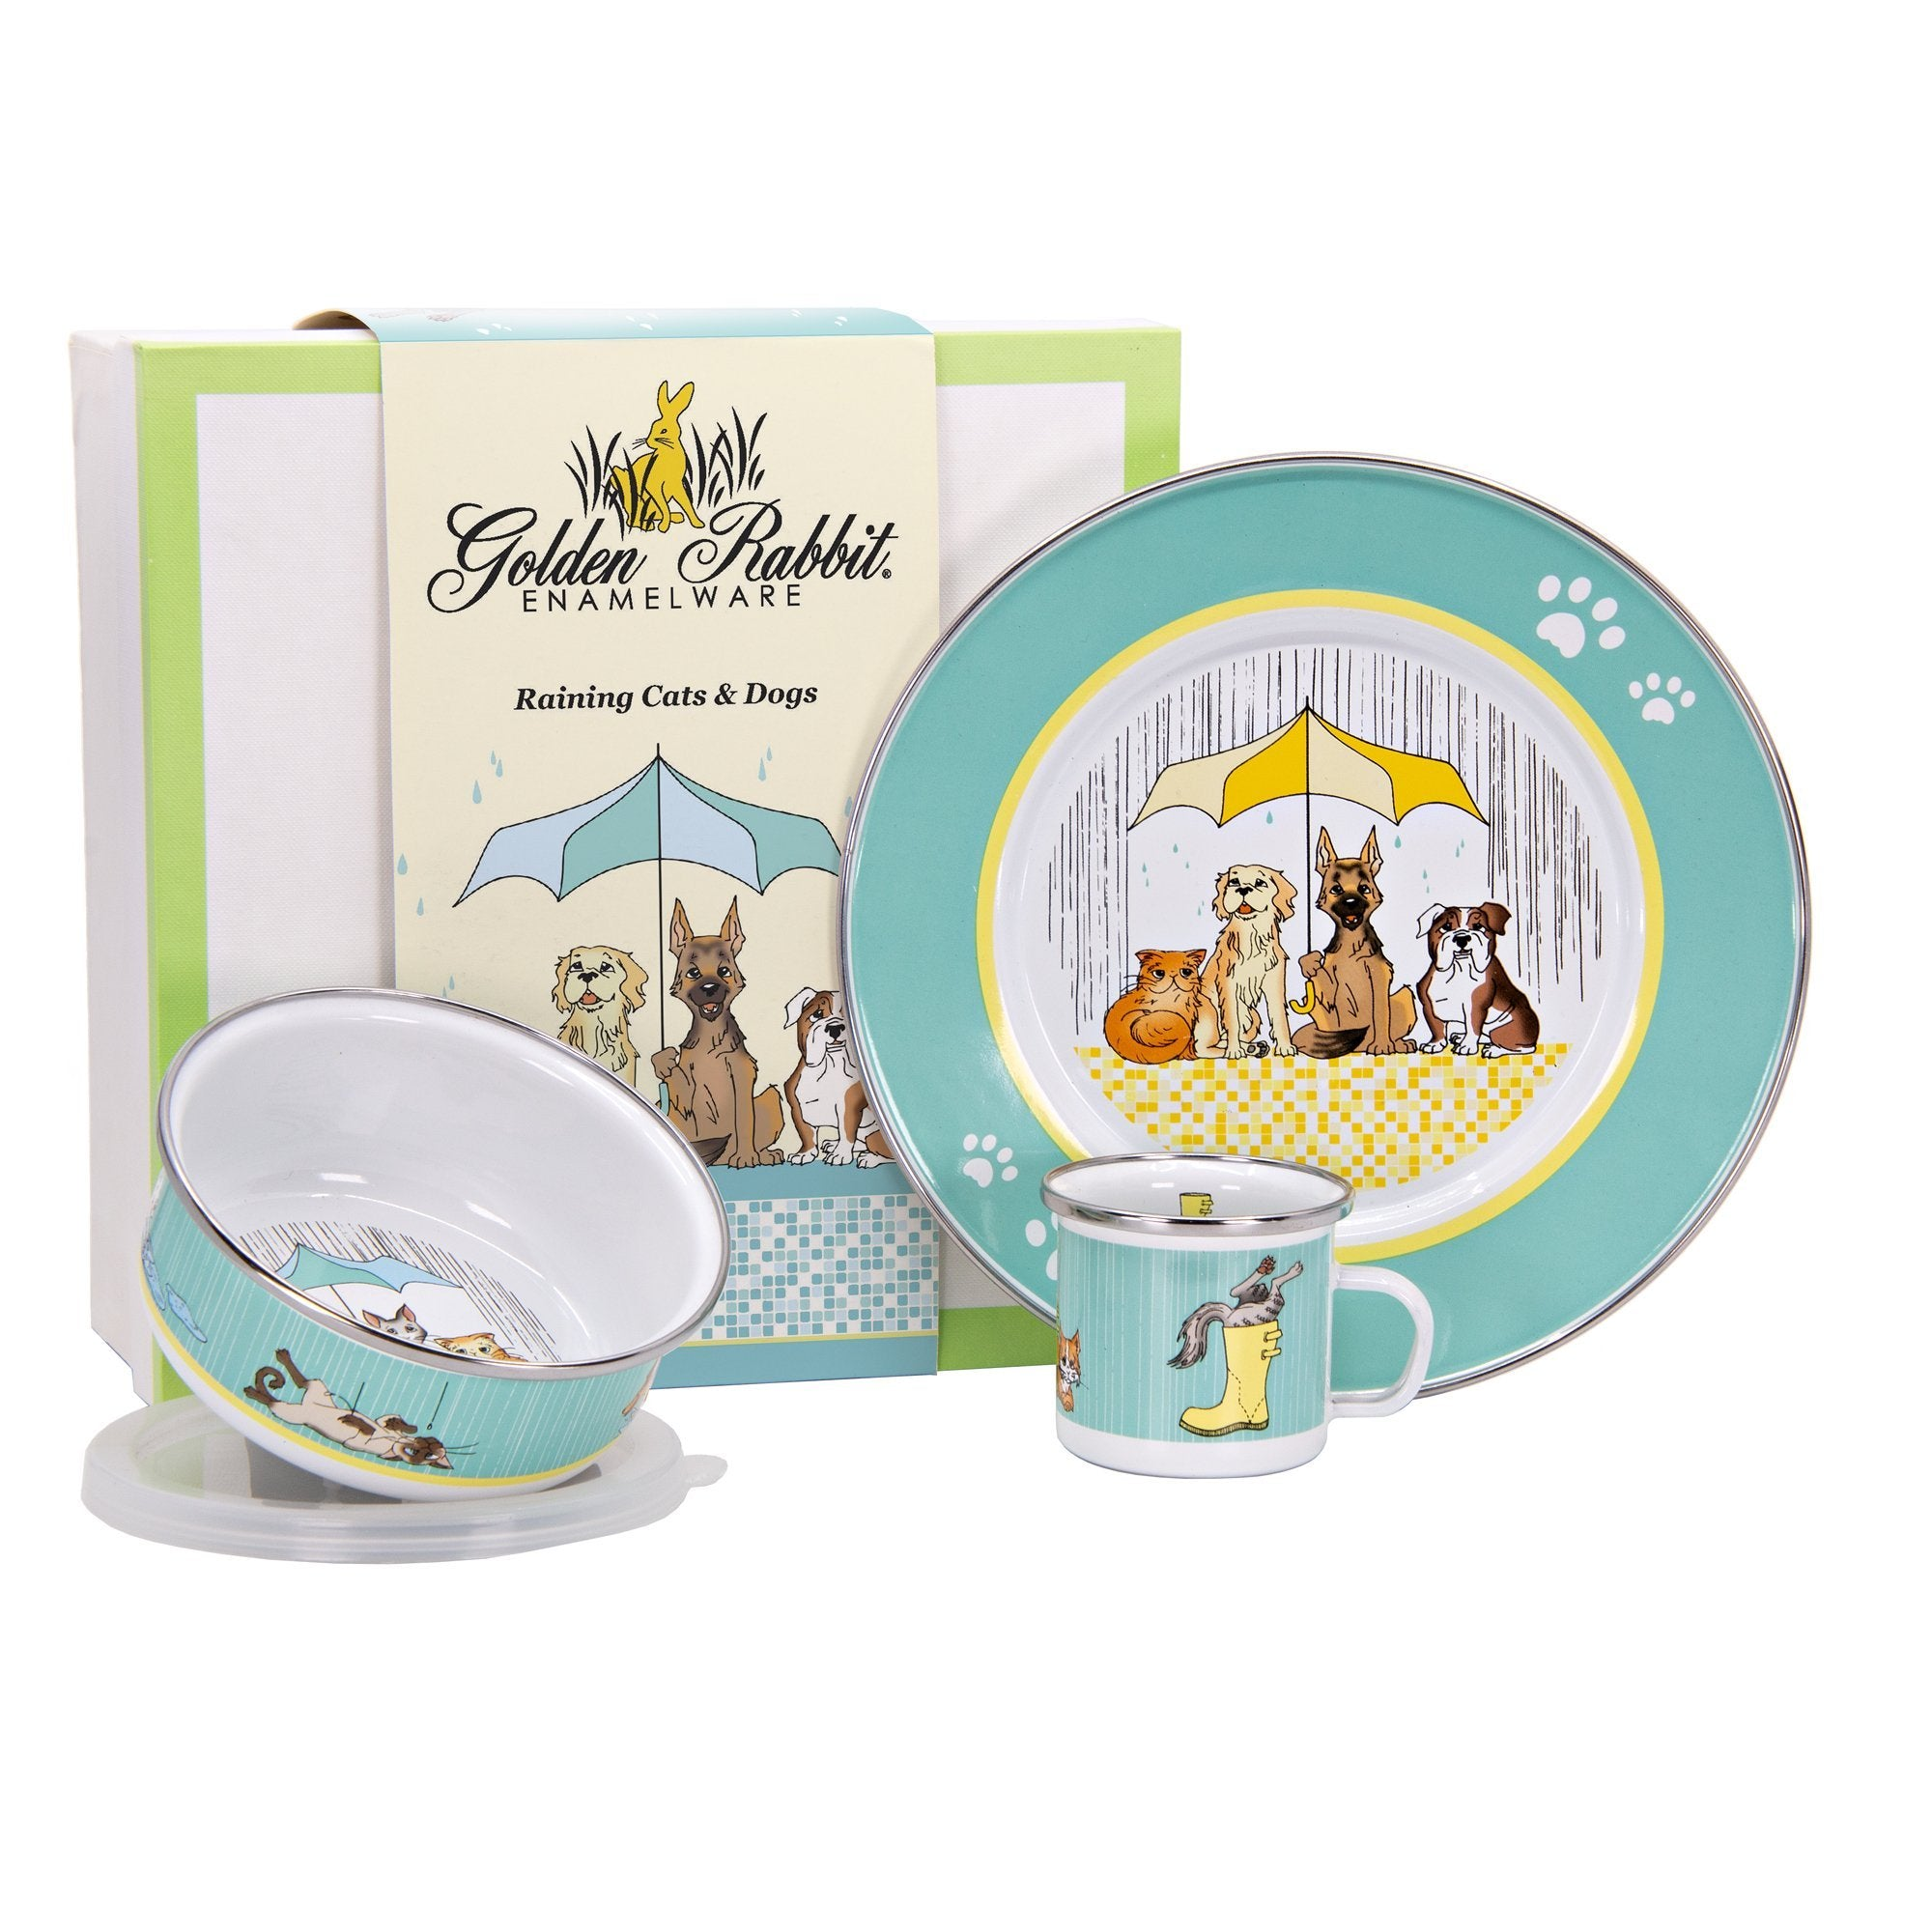 CD99 -  Enamelware Raining Cats and Dogs - Child Dinner Set by Golden Rabbit Enamelware